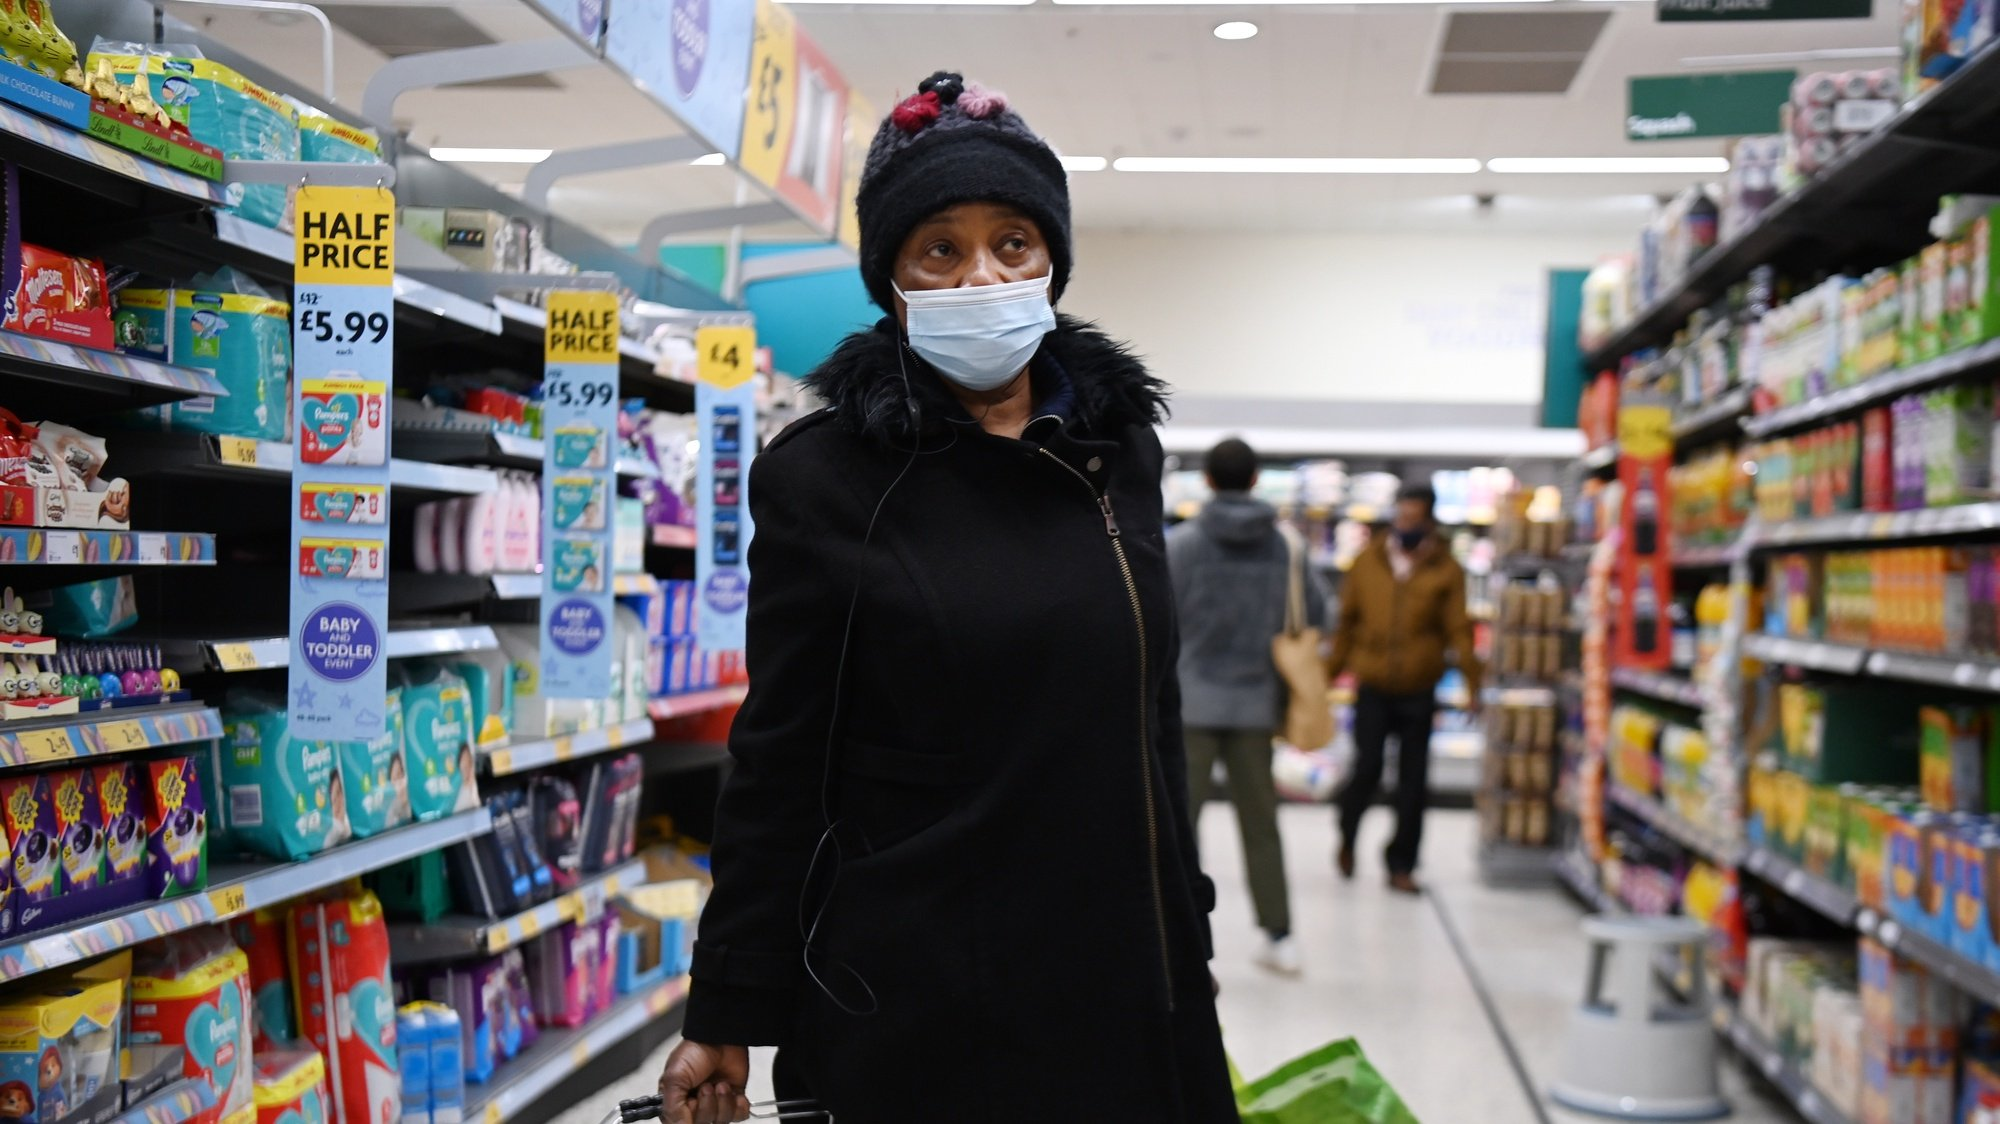 epa08932859 A shopper at a Morrisons supermarket in London, Britain, 12 January 2021. Supermarket chains Morrisons and Sainsbury's have announced that they will enforce stricter shopping measures by insisting on customers wearing face coverings. Britain's national health service (NHS) is coming under severe pressure as Covid-19 hospital admissions continue to rise across the UK.  EPA/ANDY RAIN